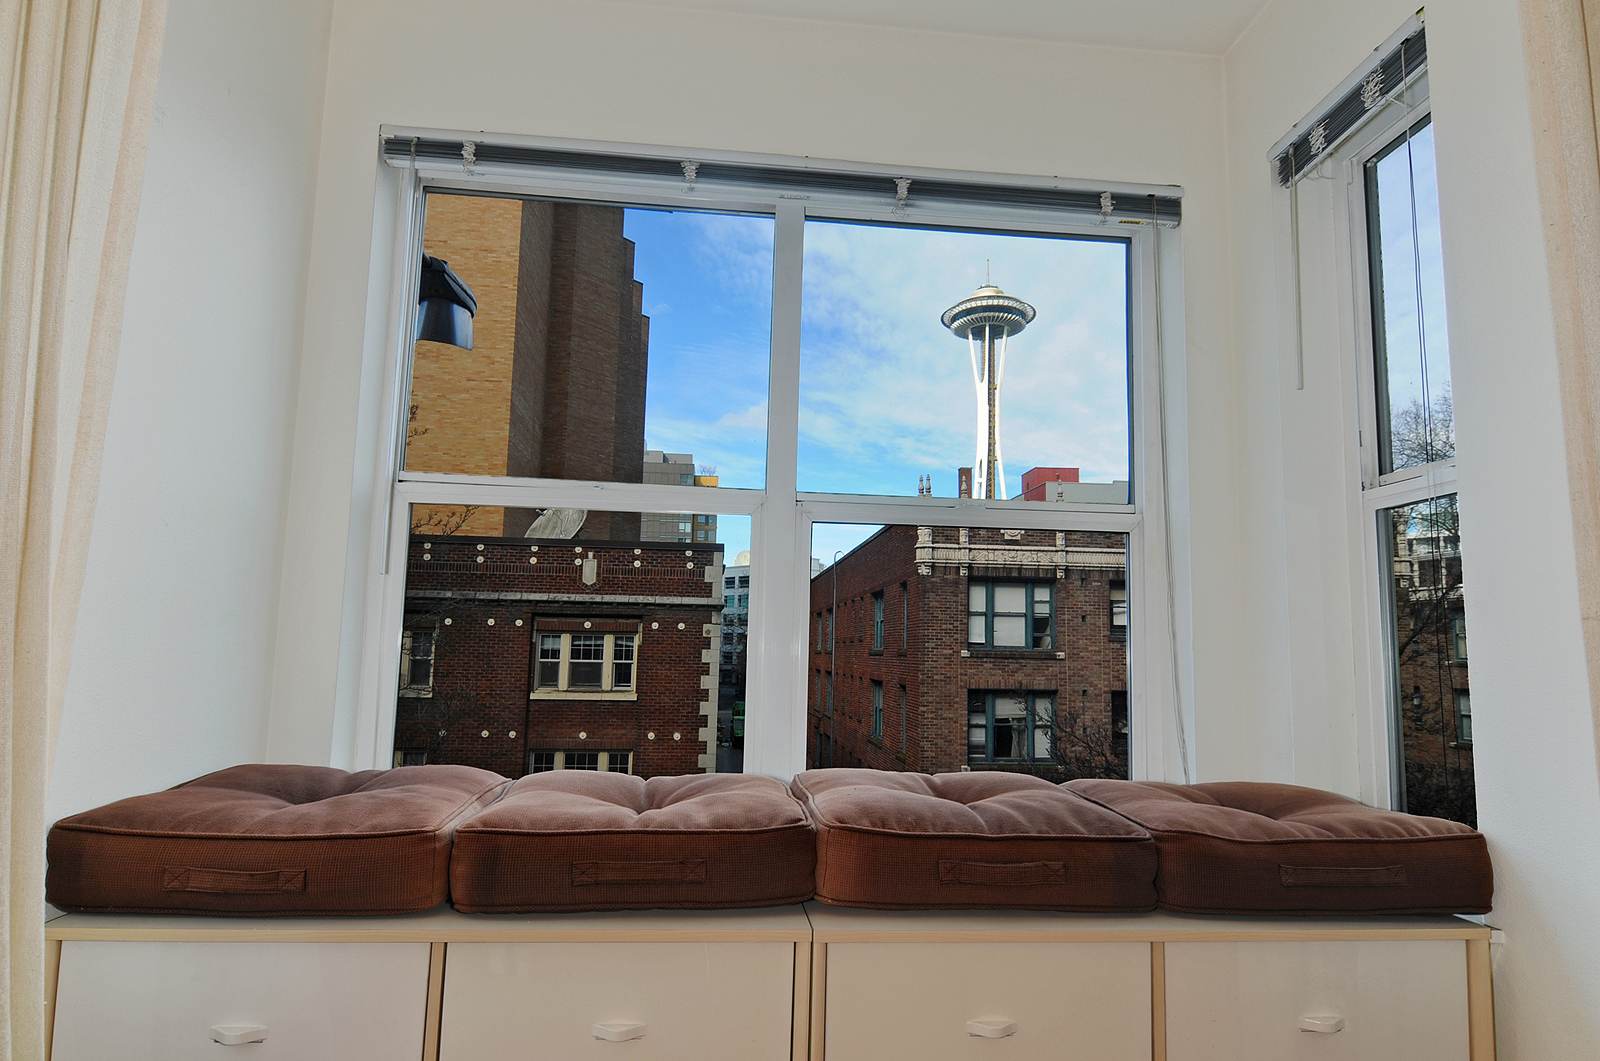 425 Vine St 401, Seattle, WA - USA (photo 5)